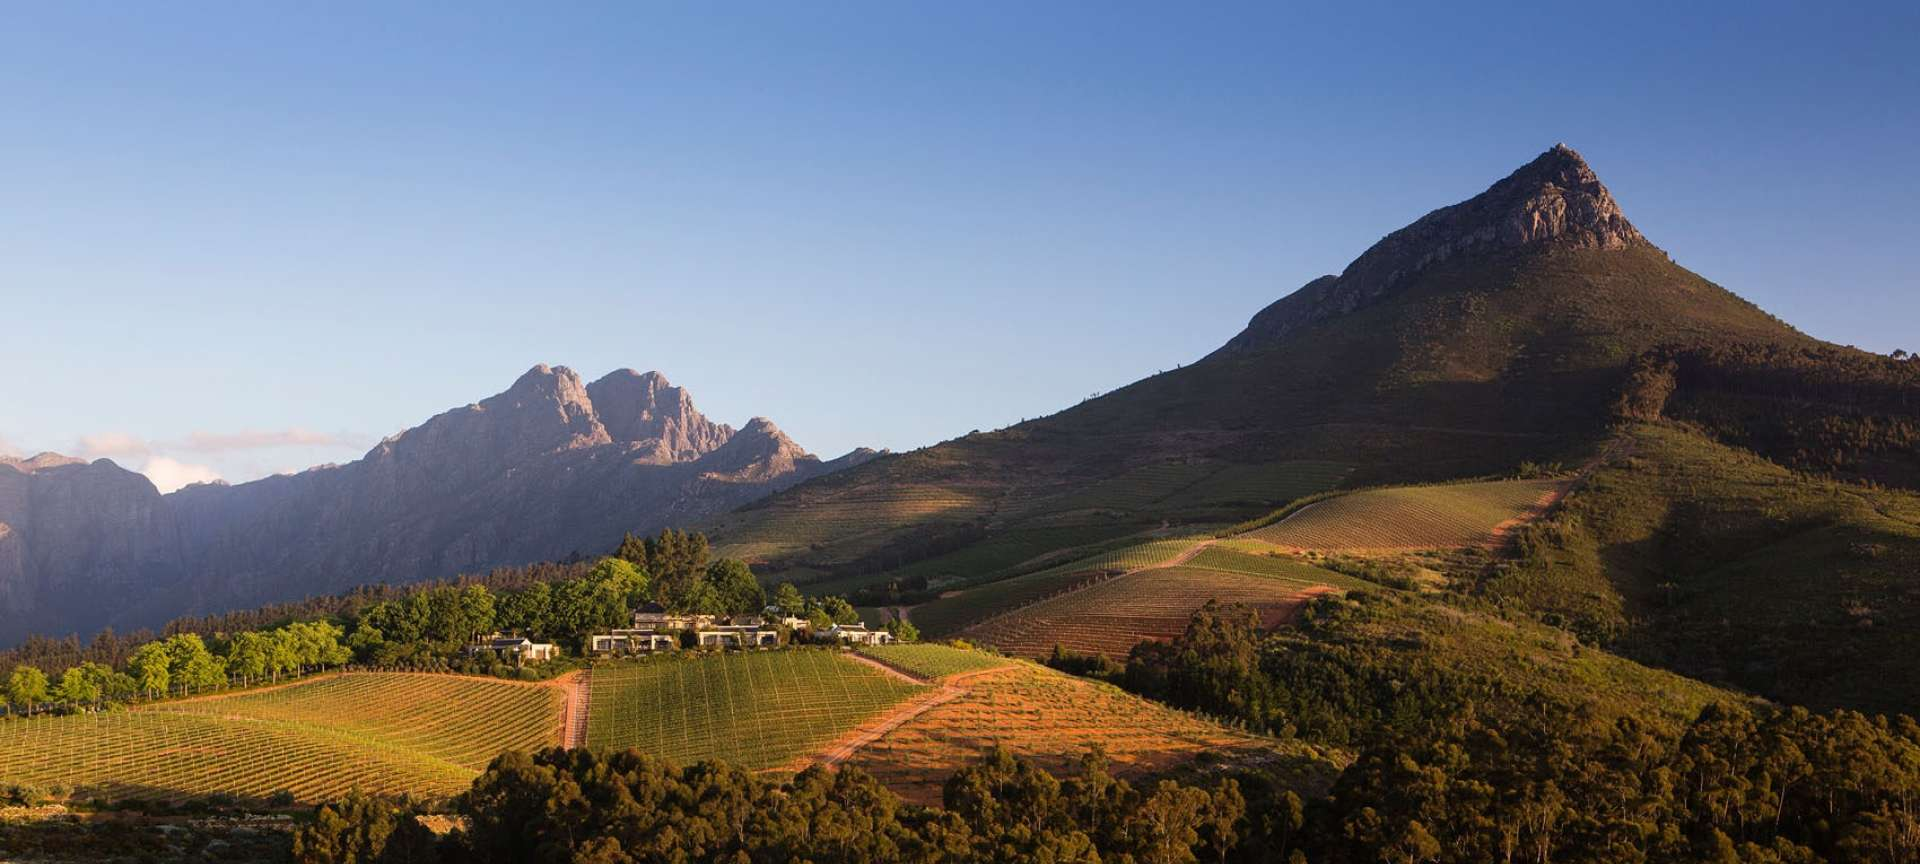 rsa winelands